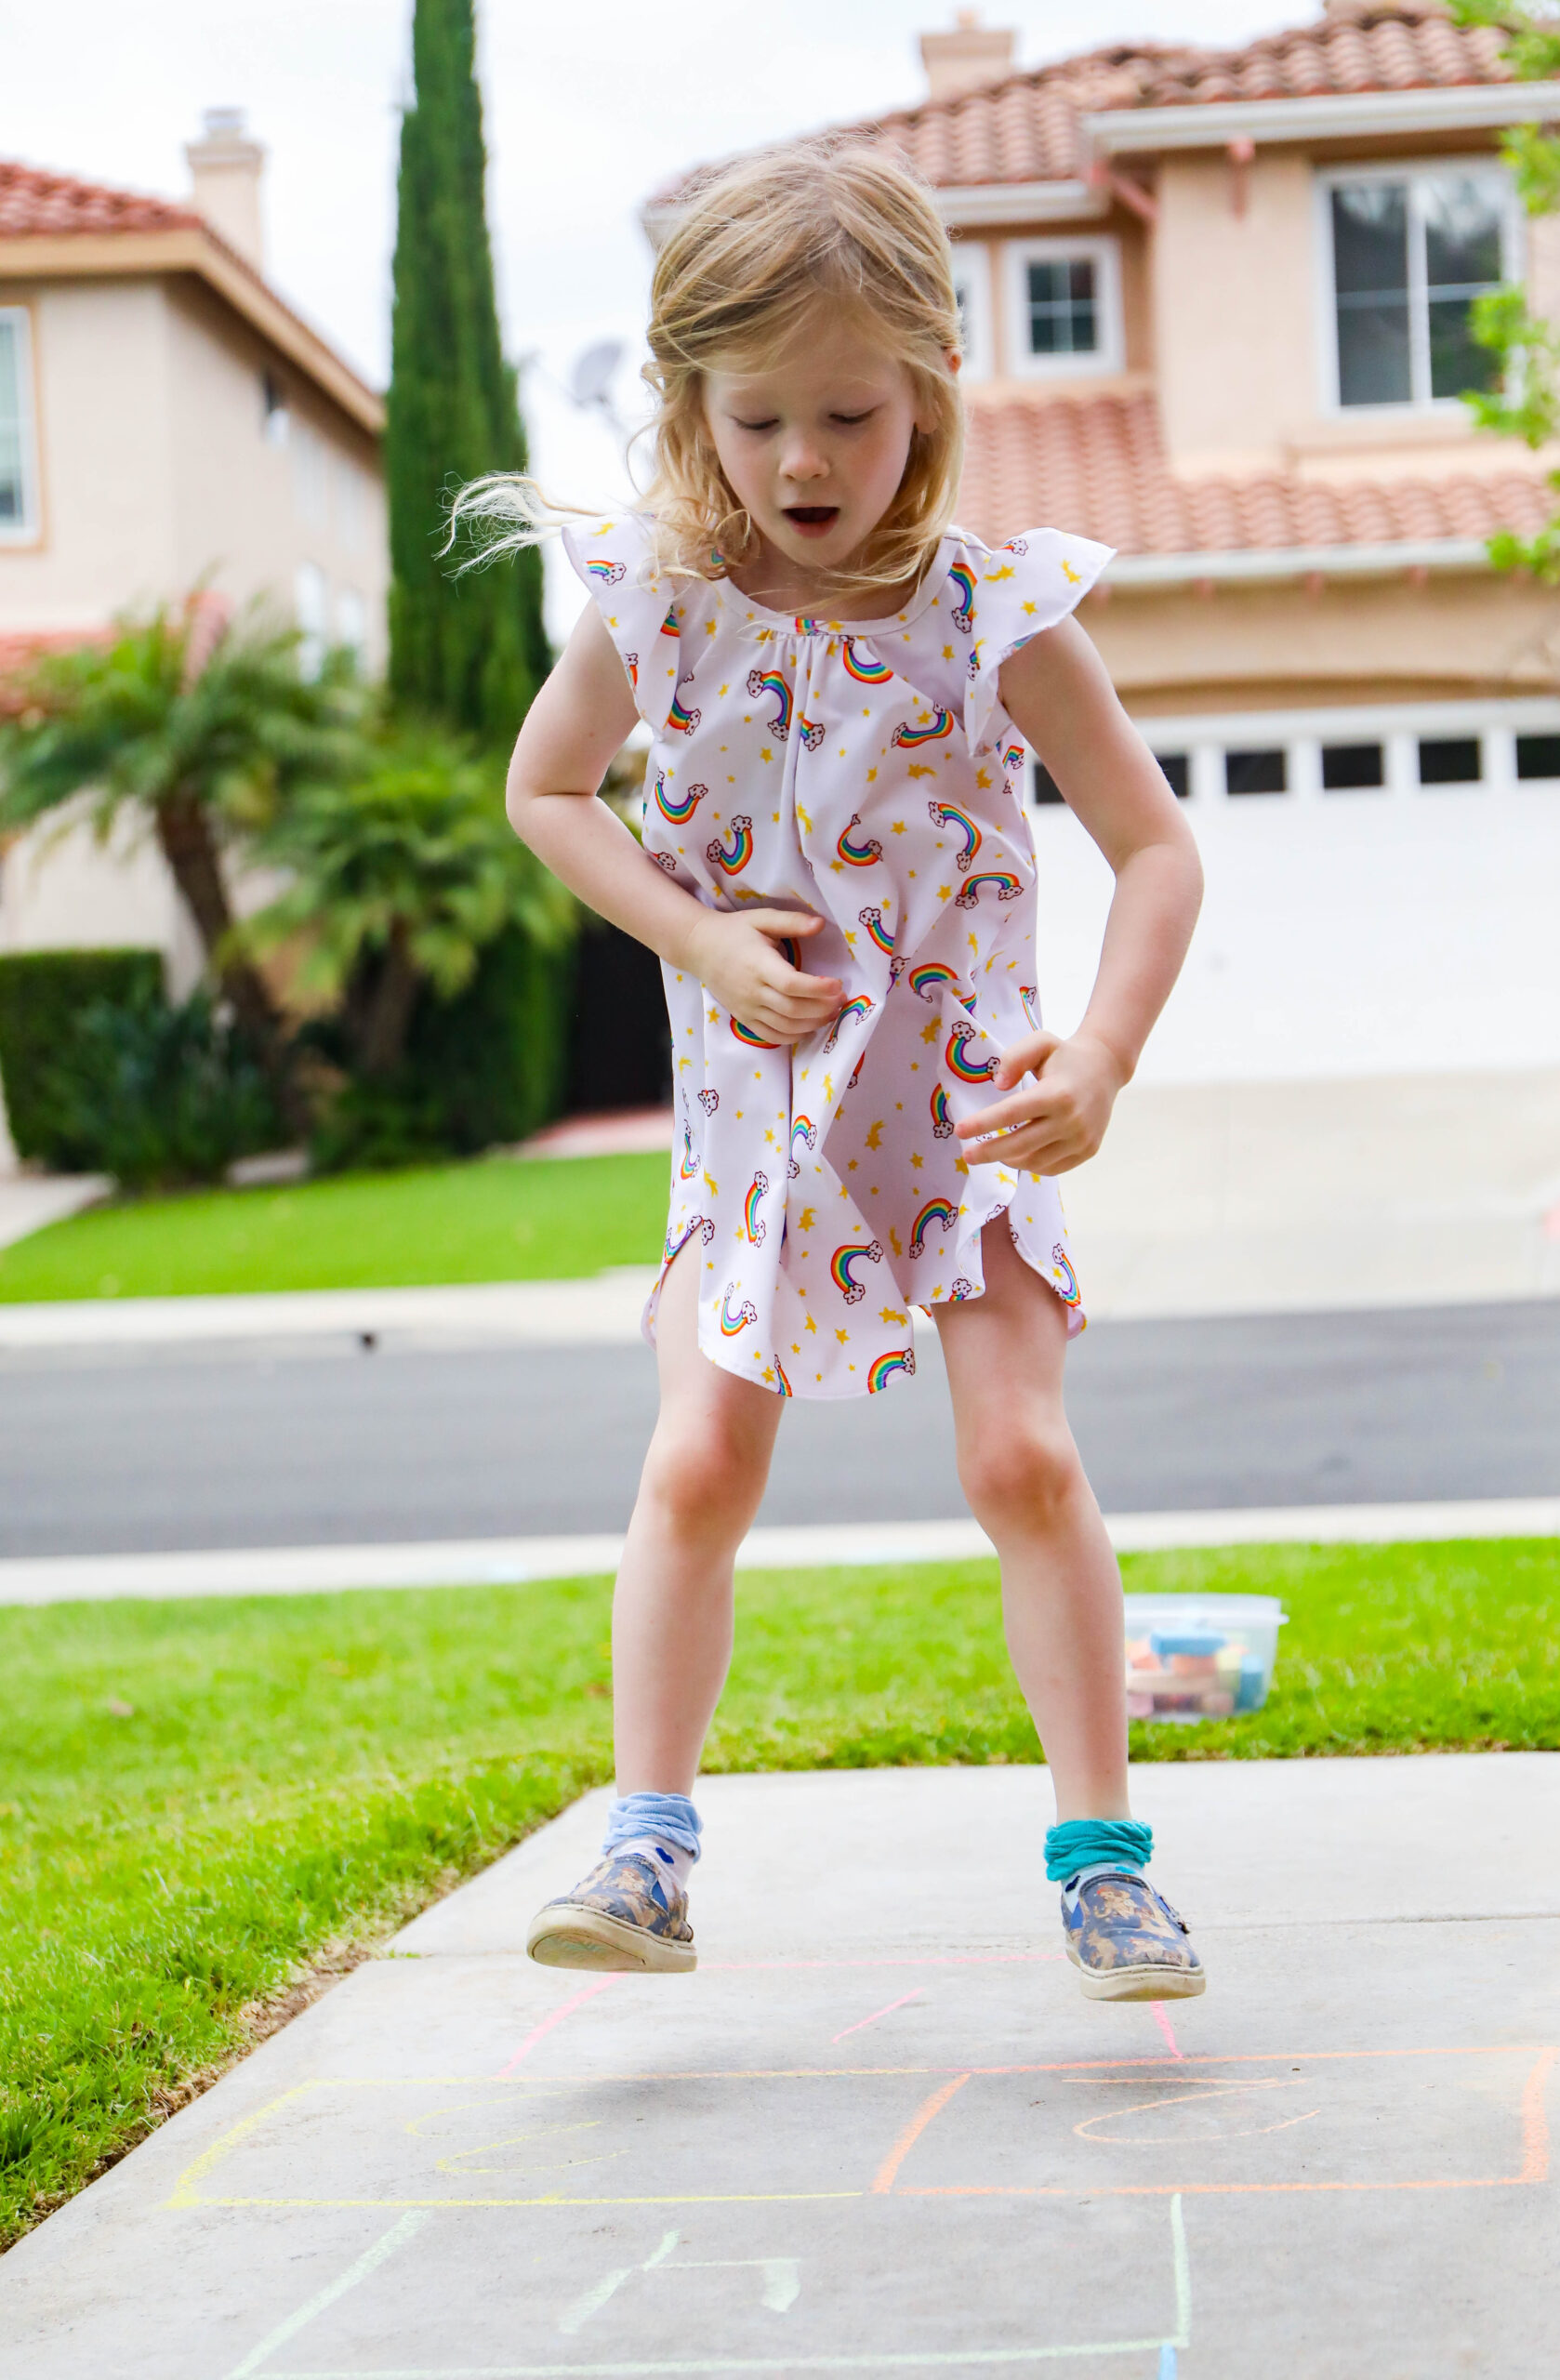 From hopscotch to life sized number lines, these are some great sidewalk chalk ideas!